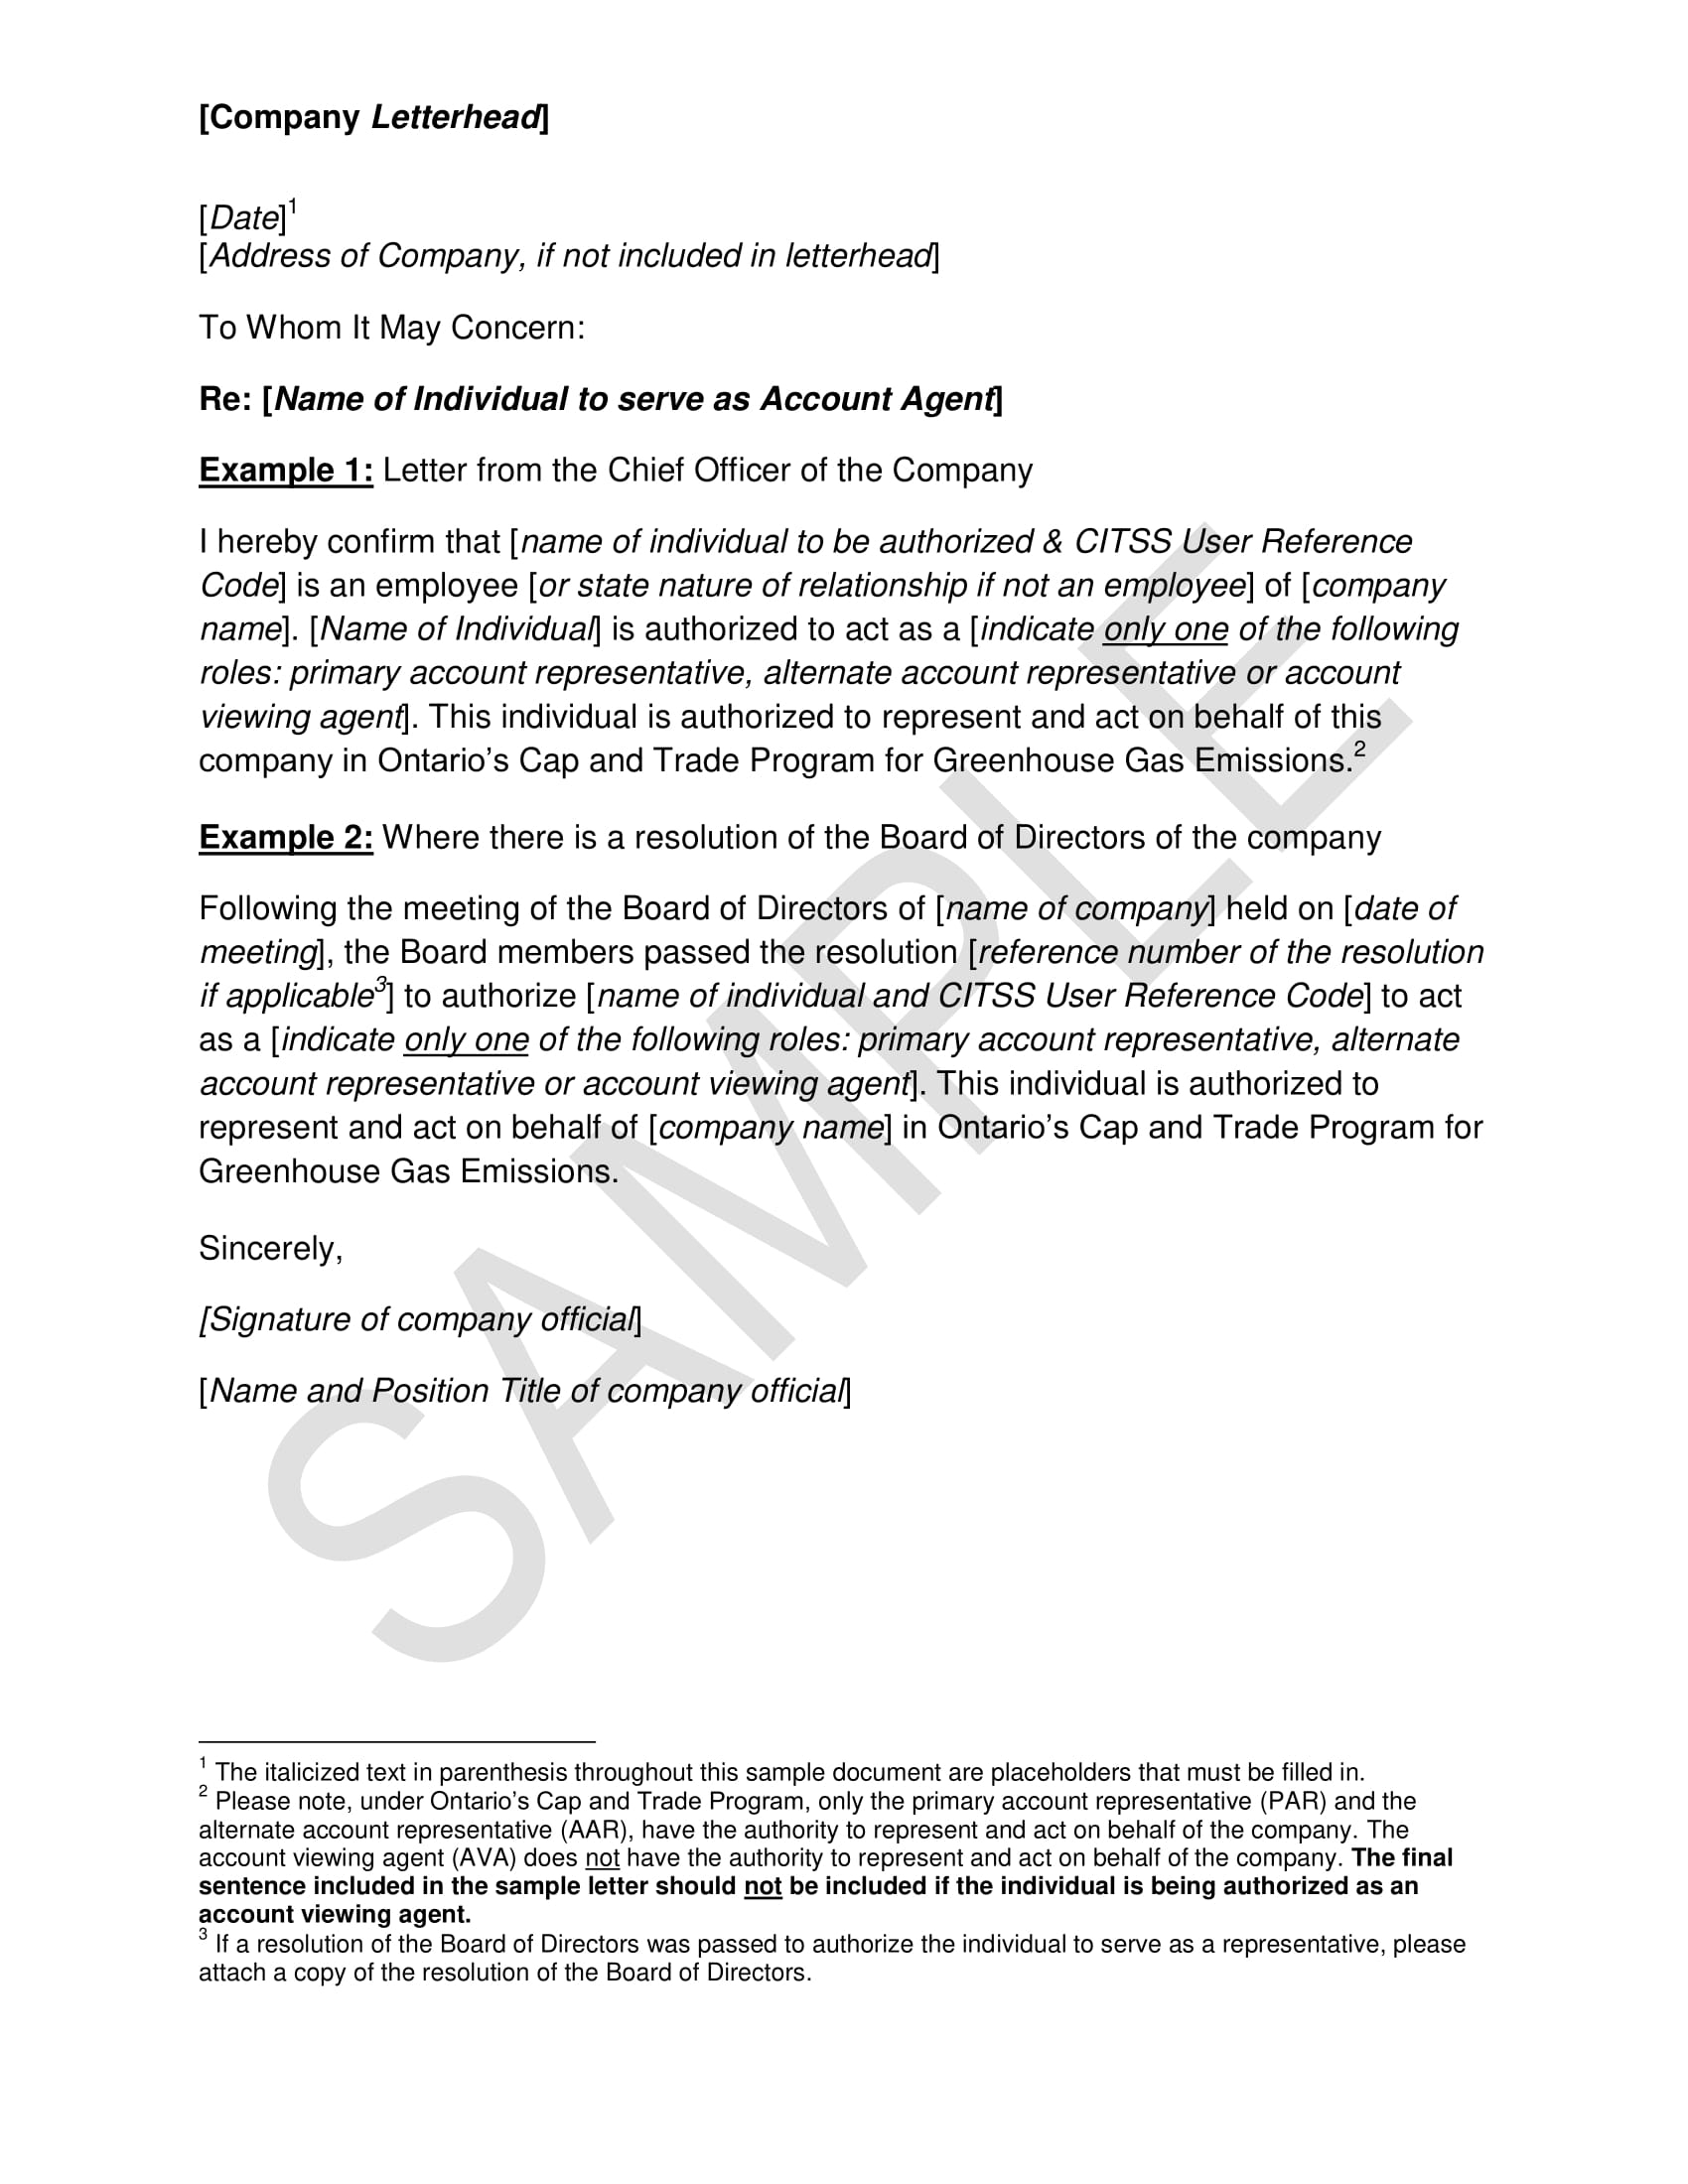 authorization letter for an agent or employee to act on behalf of the company example 1